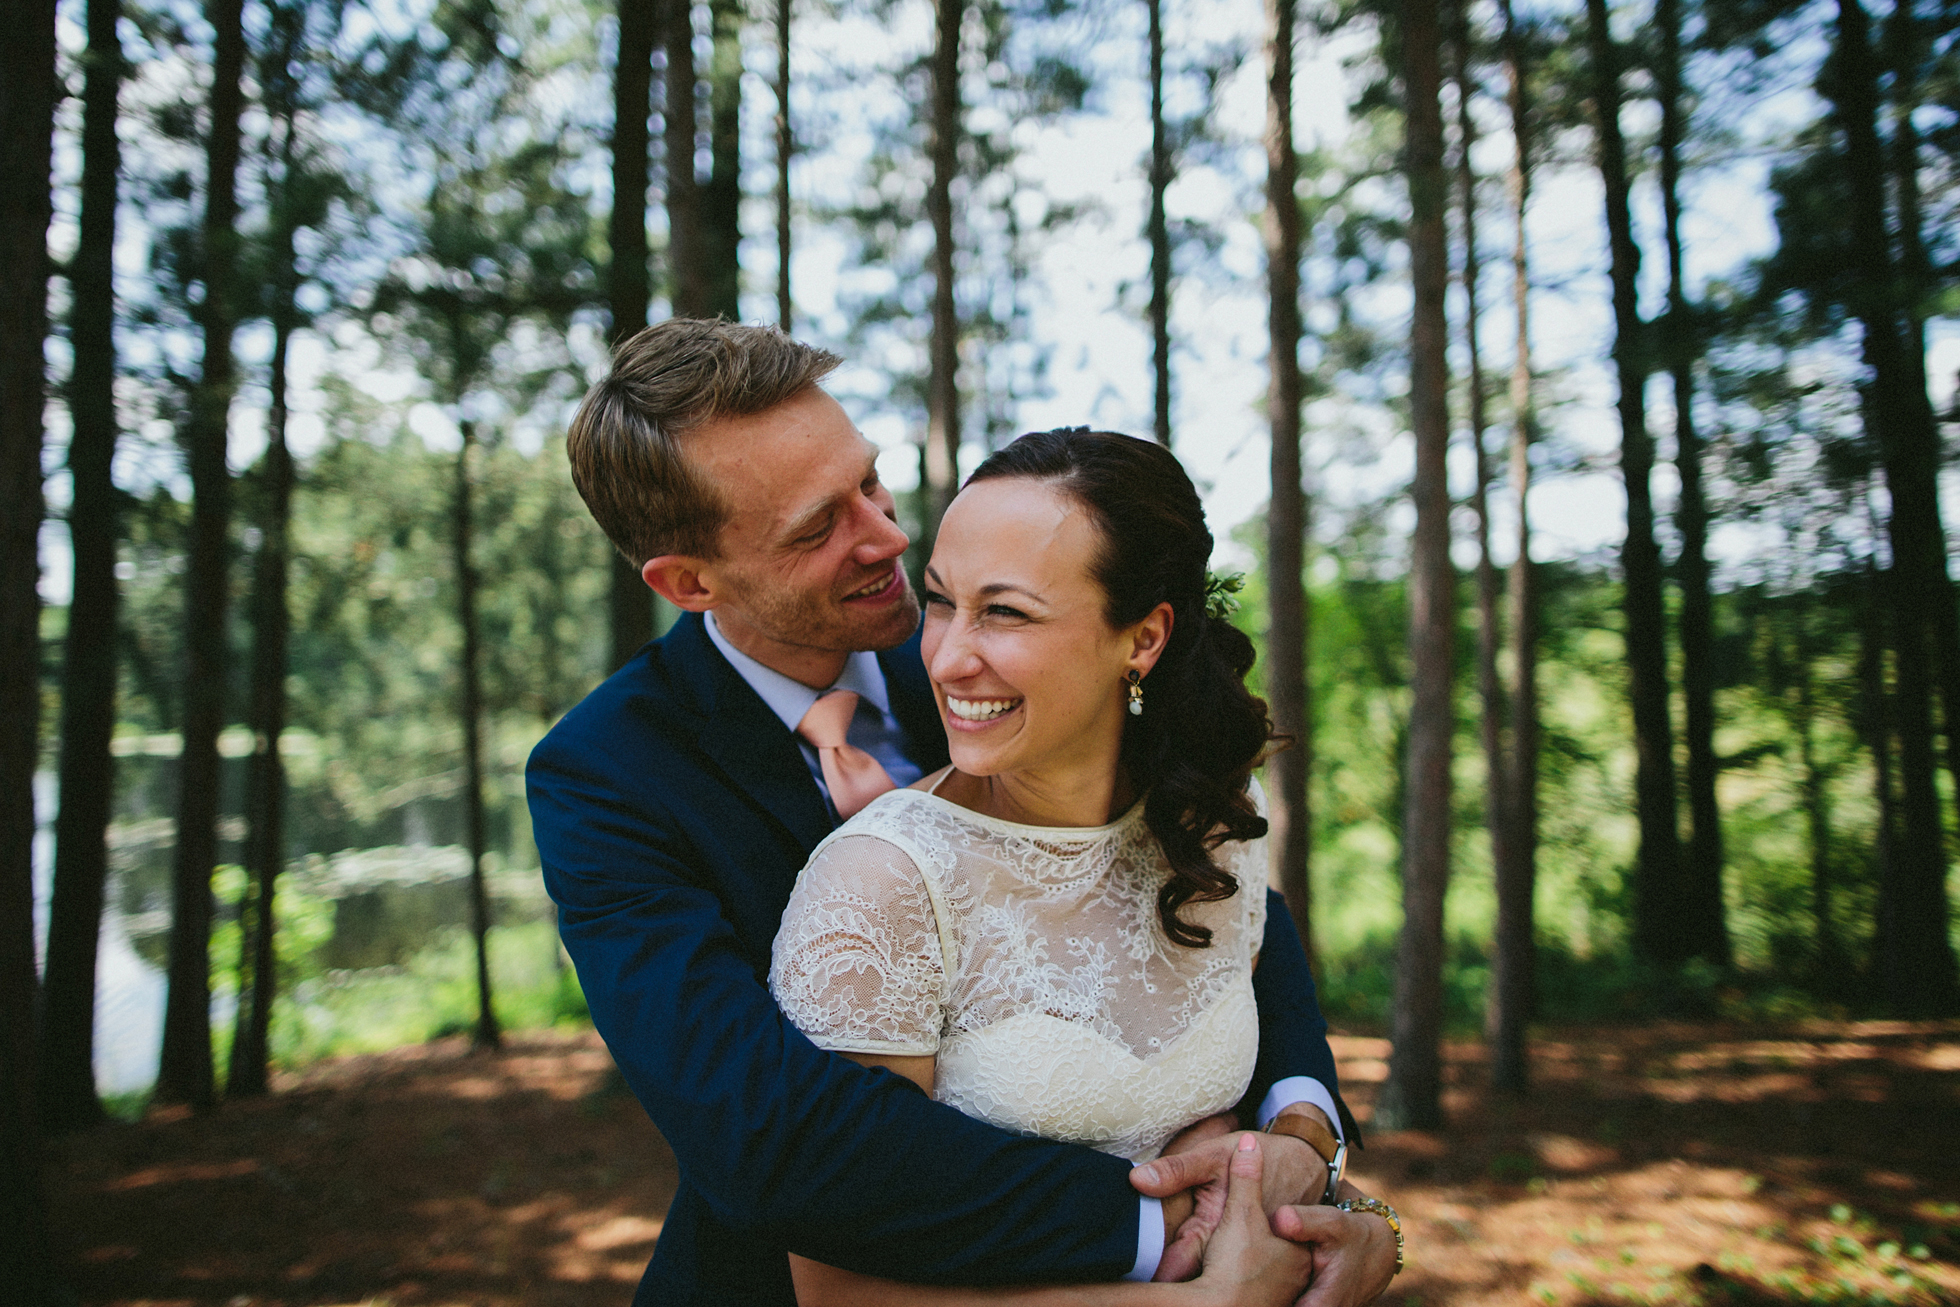 indie wedding photography, kasey loftin